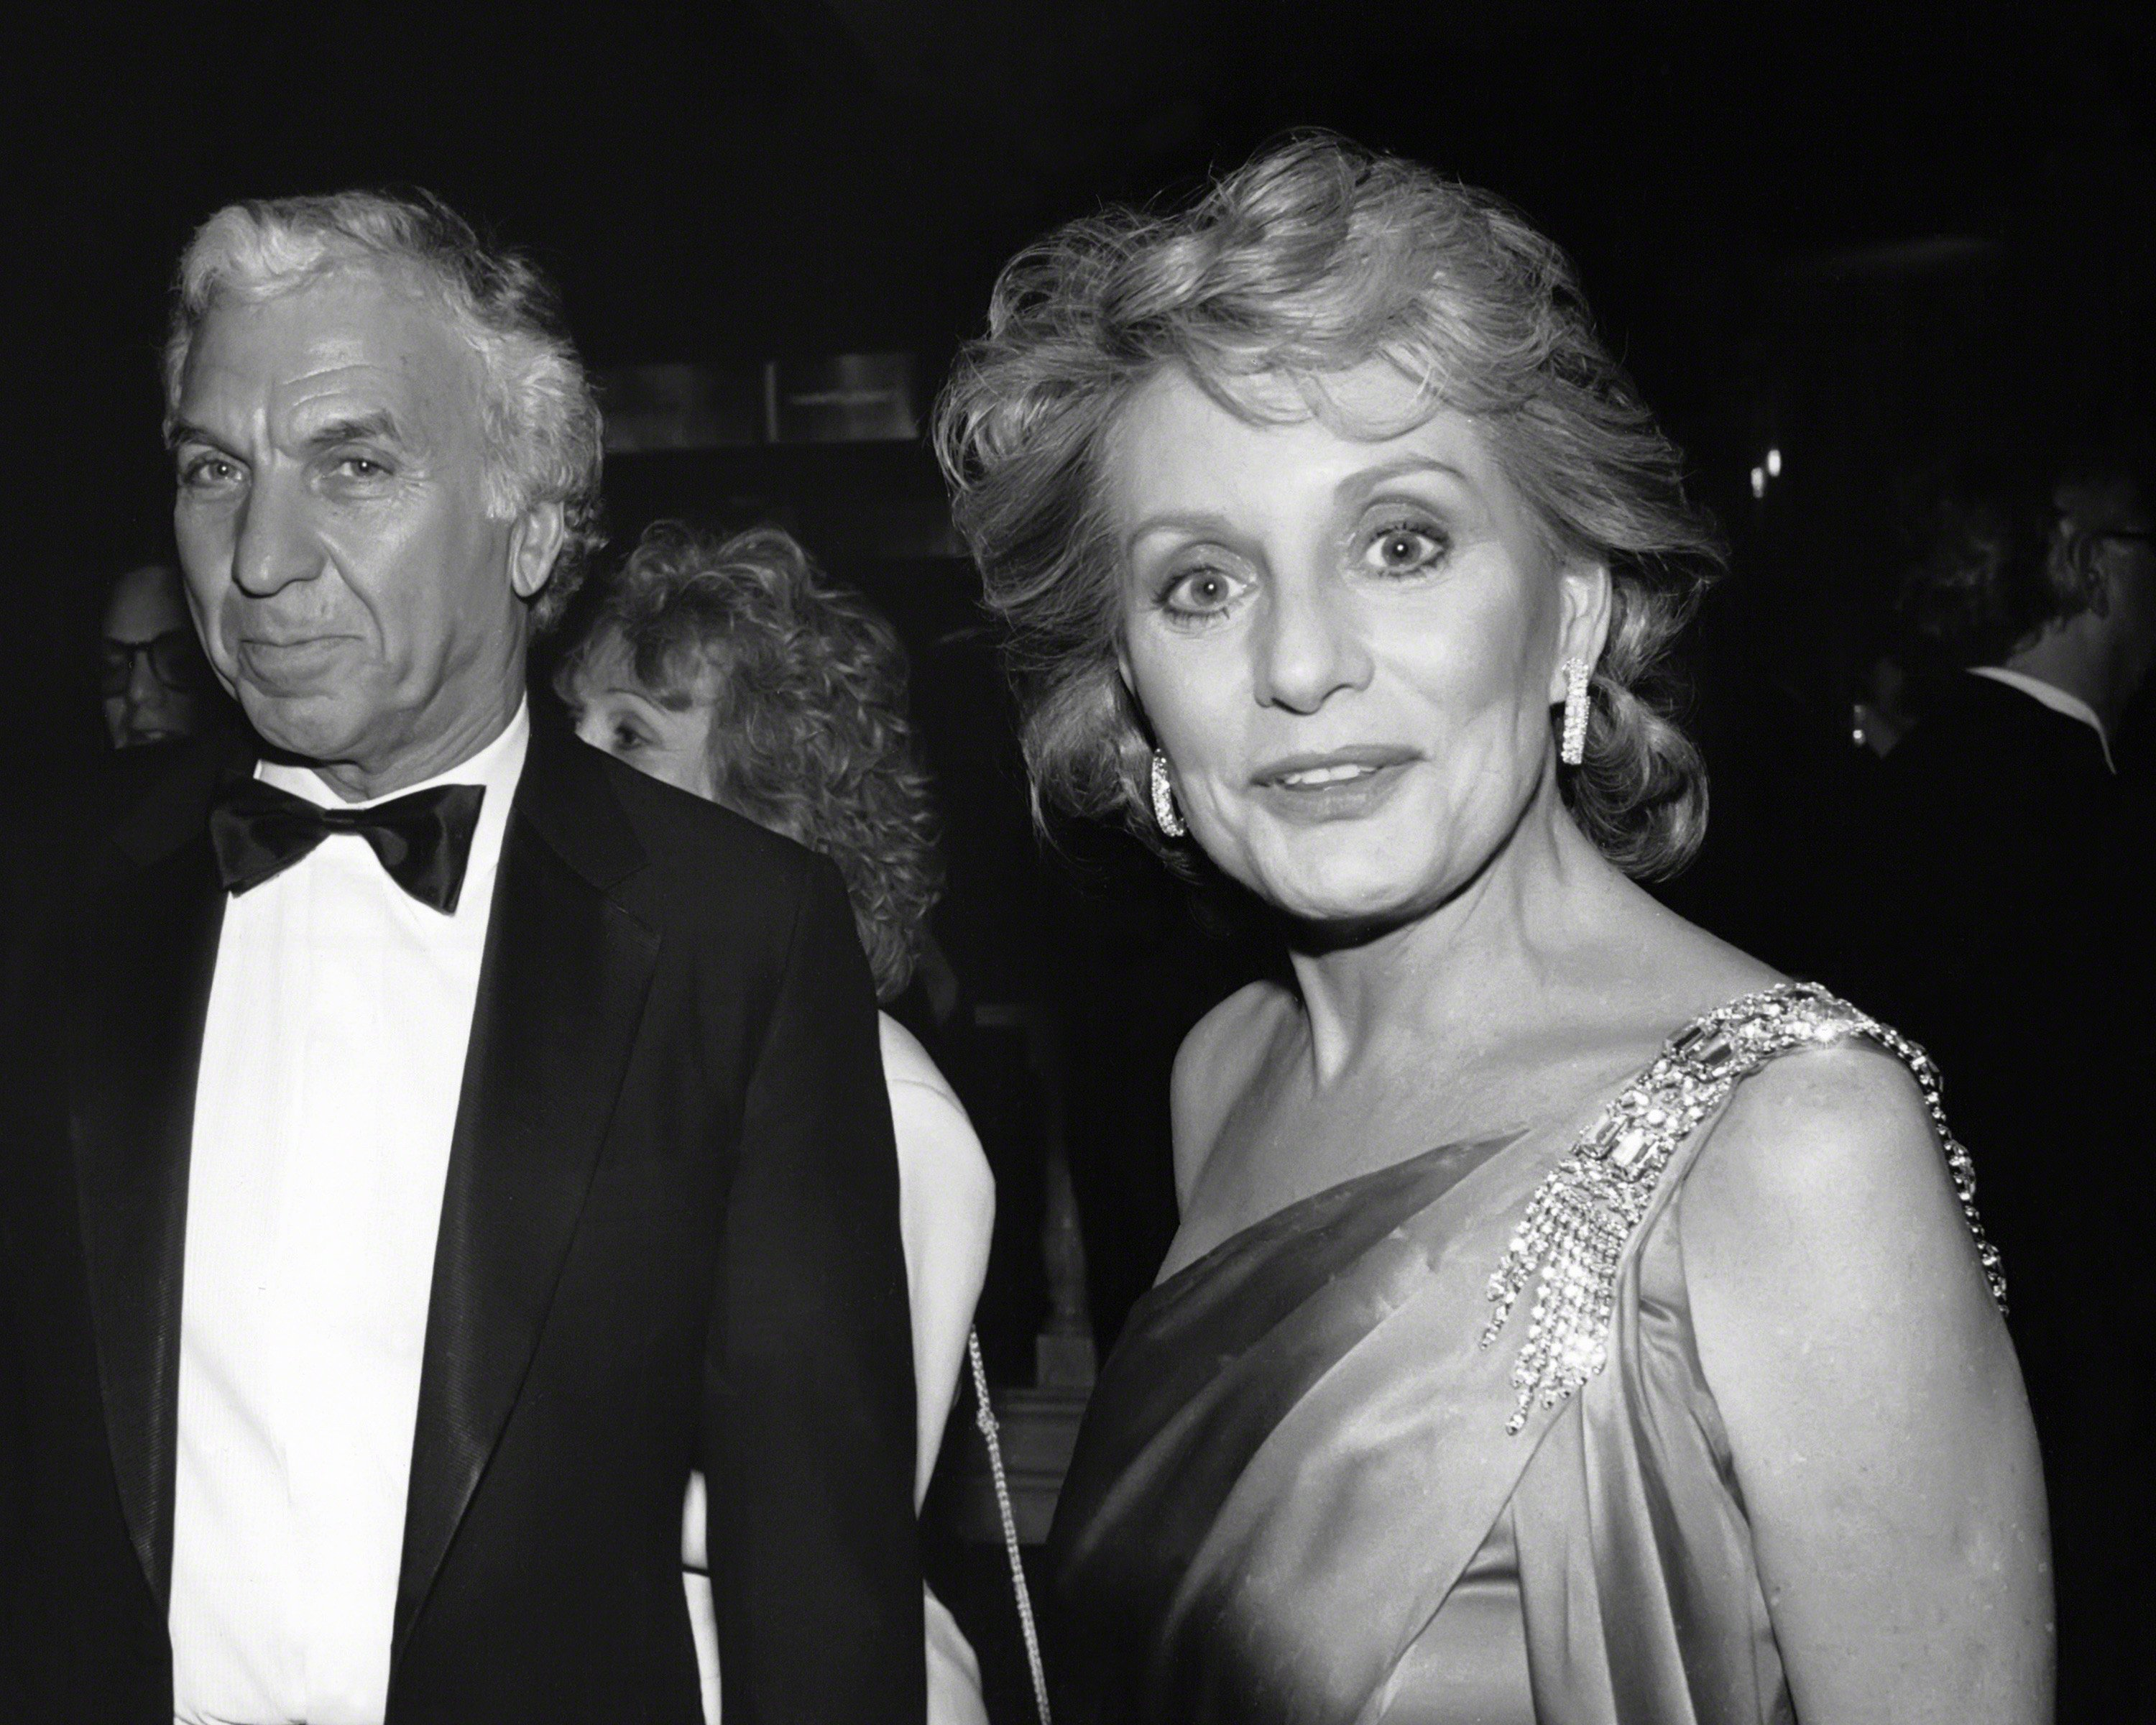 Barbara Walters and Merv Adelson circa 1985 in New York City.  | Photo: GettyImages